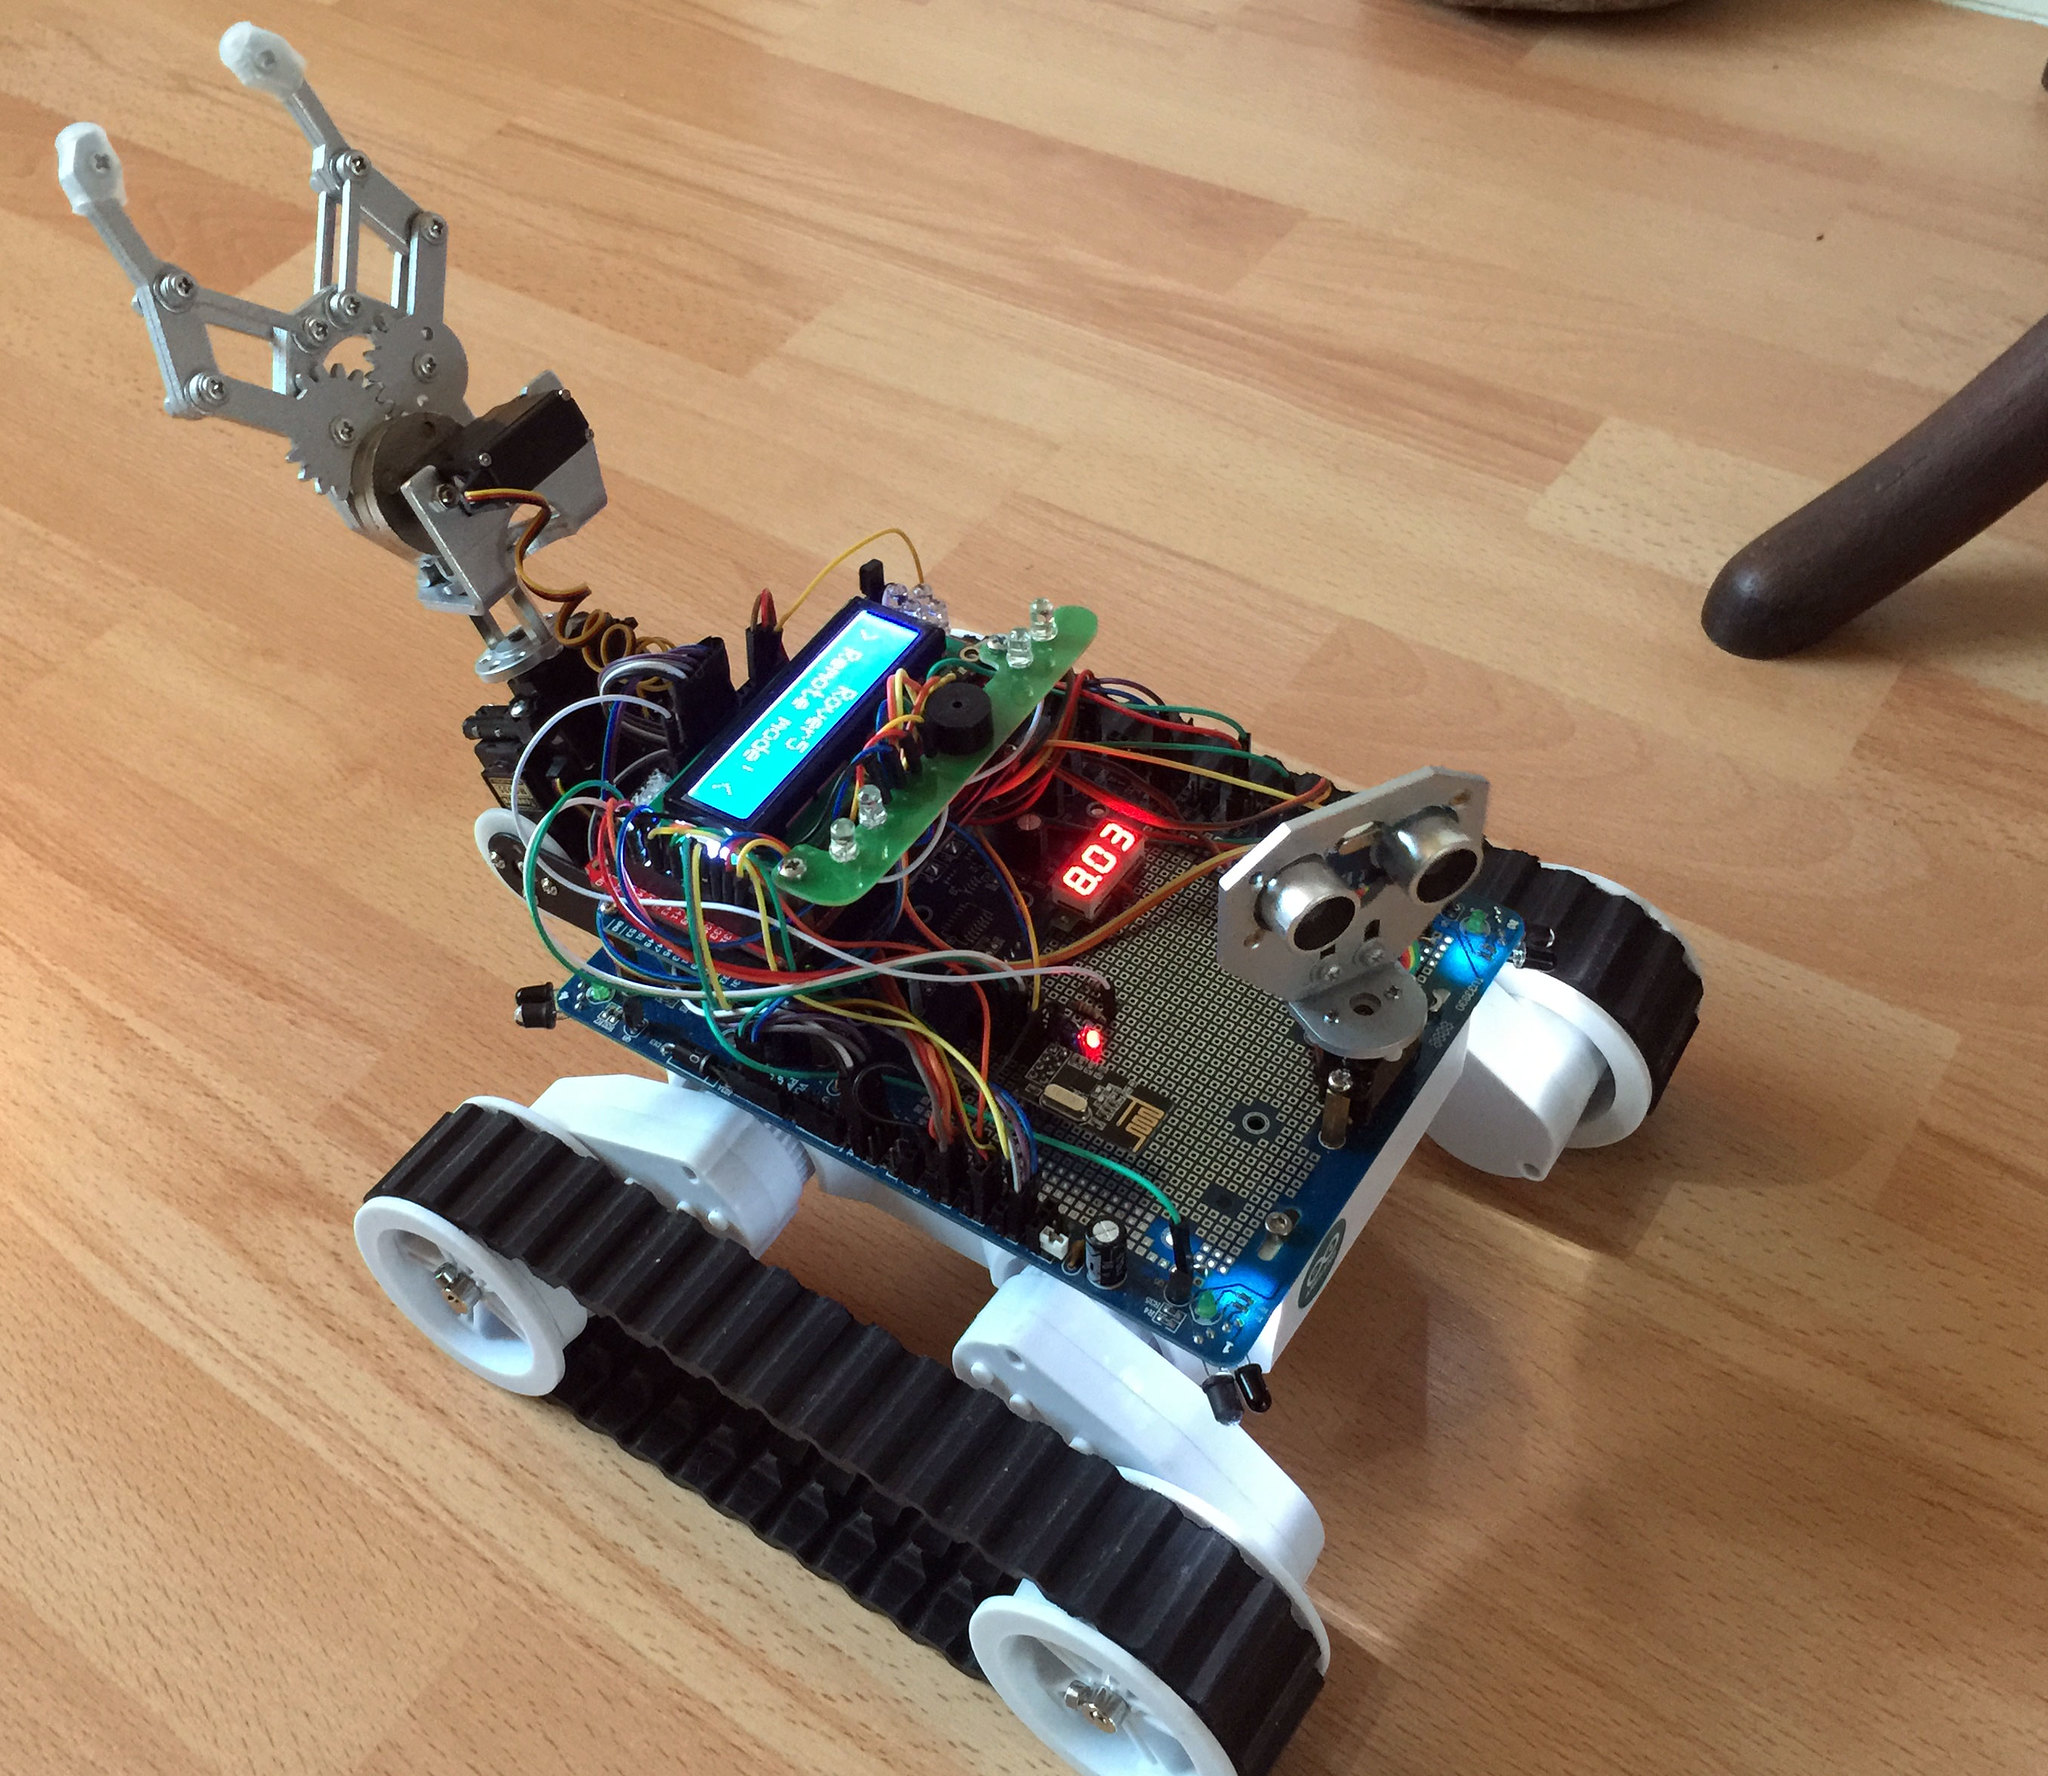 Dagu Rover 5 Selfmade Rf24l Remote Control And Now With Gripper Here Http Arduinoinfowikispacescom Popularics Scroll Down Uno Joystick Shield To The Lcd Shows Current Of Motors Battery Voltages From